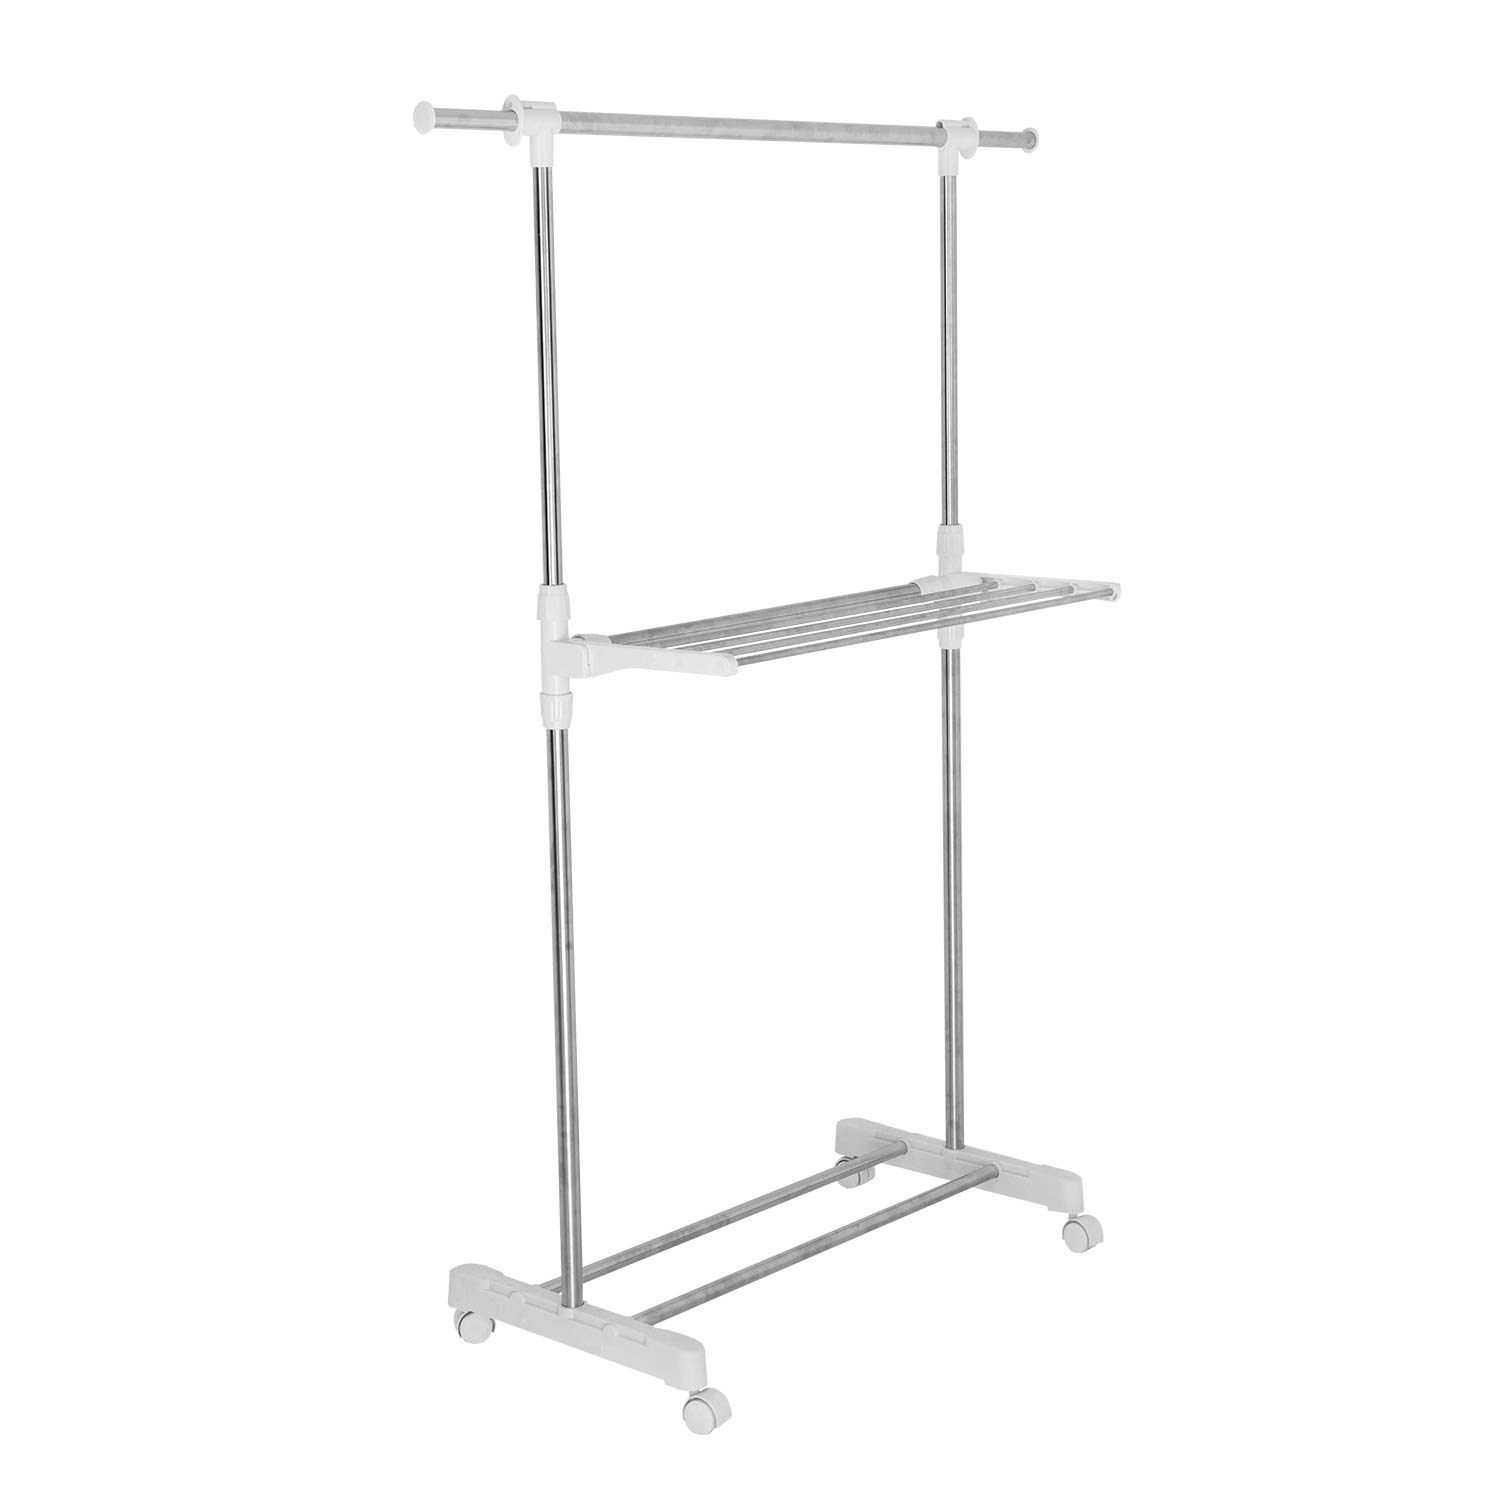 soges Percheros Modernos de pie, Acero Inoxidable Heavy Duty Double Rail, Ropa Ajustable de Rodadura Perchero de Ropa Periódico de Secado de Ropa Rack ...